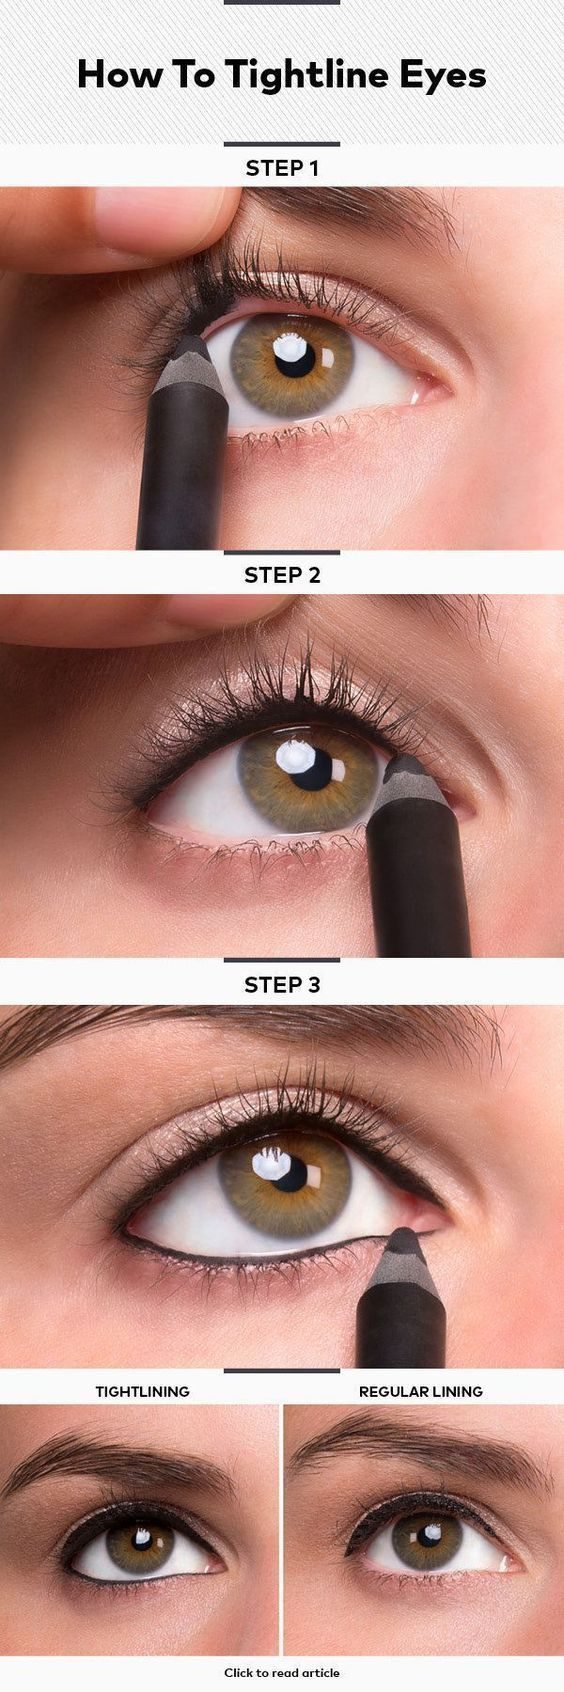 7 tips for the perfect tightline eyeliner - hairstyle 2019 -  7 tips for the perfect tightline eyeliner #tutorial #eyeliner #wing #make up #tips   - #christmaspresentsforwomen #curbywomen #eyeliner #getal #hairstyle #lingrie #loving #people #perfect #plussizedresses #presentideasforwomen #tightline #tips #womenbodybuilders #womenglasses